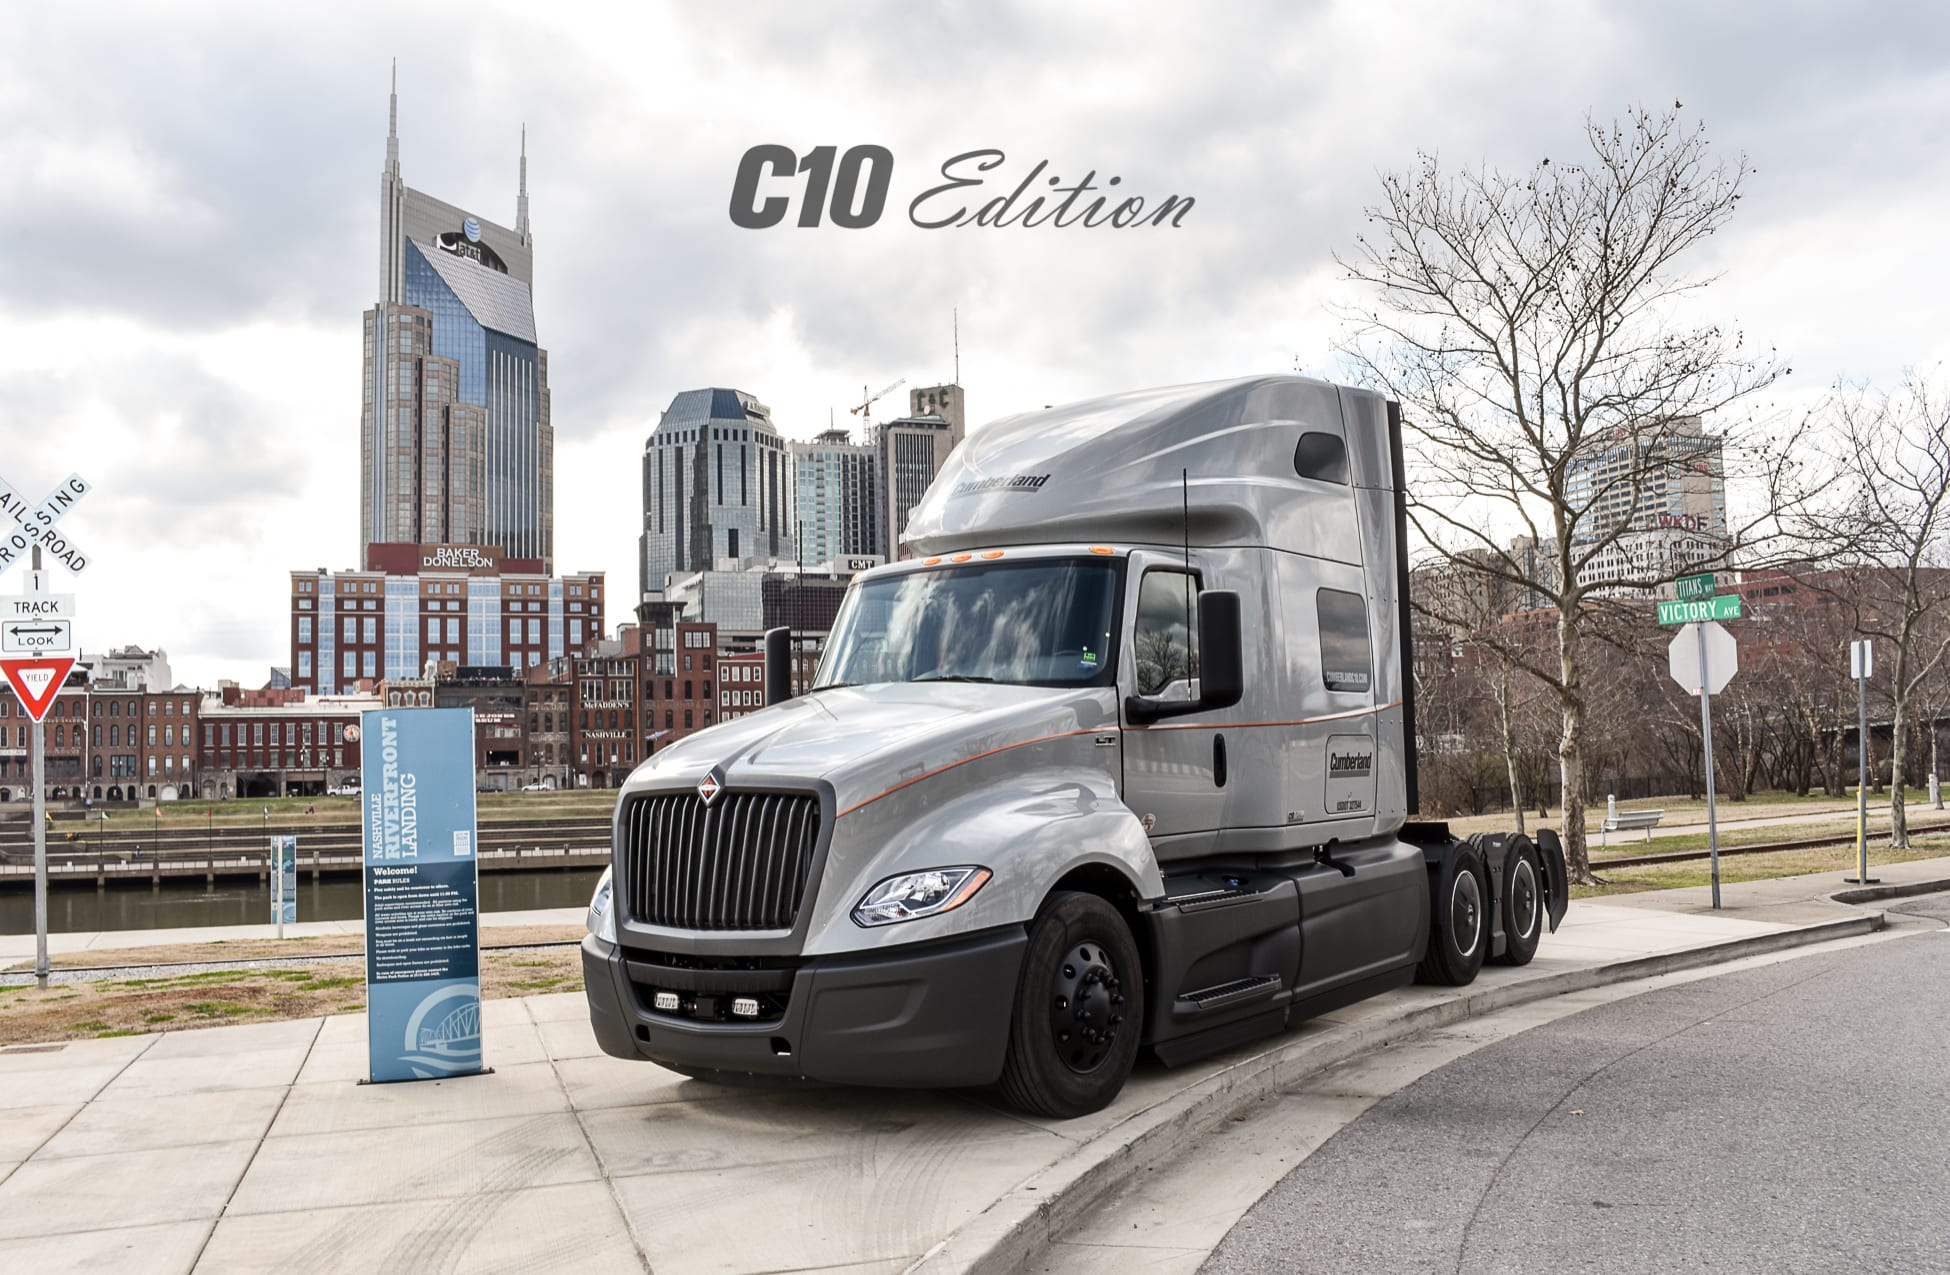 Nashville, TN Cumberland International Truck Dealership's Next Generation C10 Edition - Fuel Efficient Truck